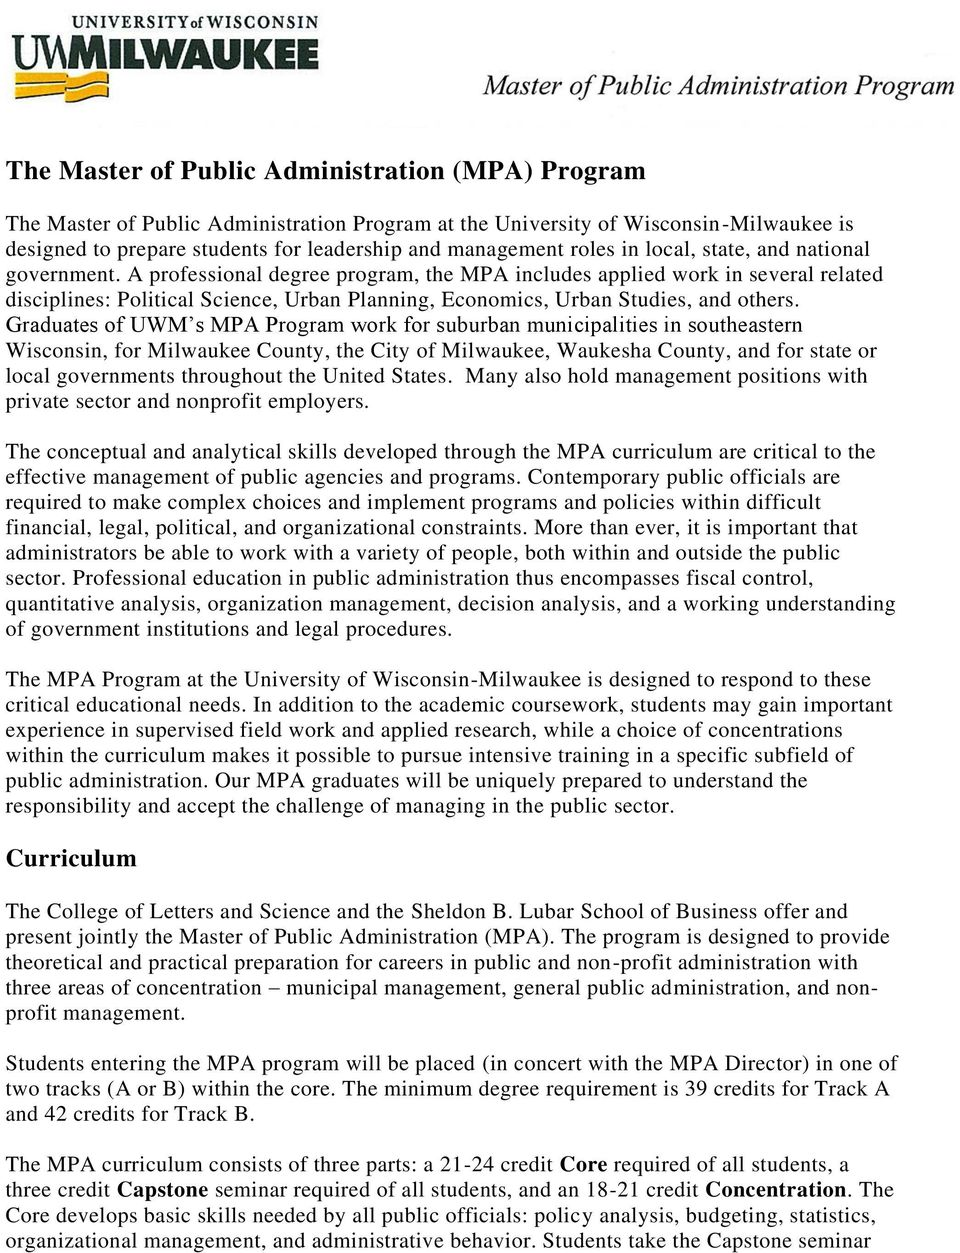 A professional degree program, the MPA includes applied work in several related disciplines: Political Science, Urban Planning, Economics, Urban Studies, and others.